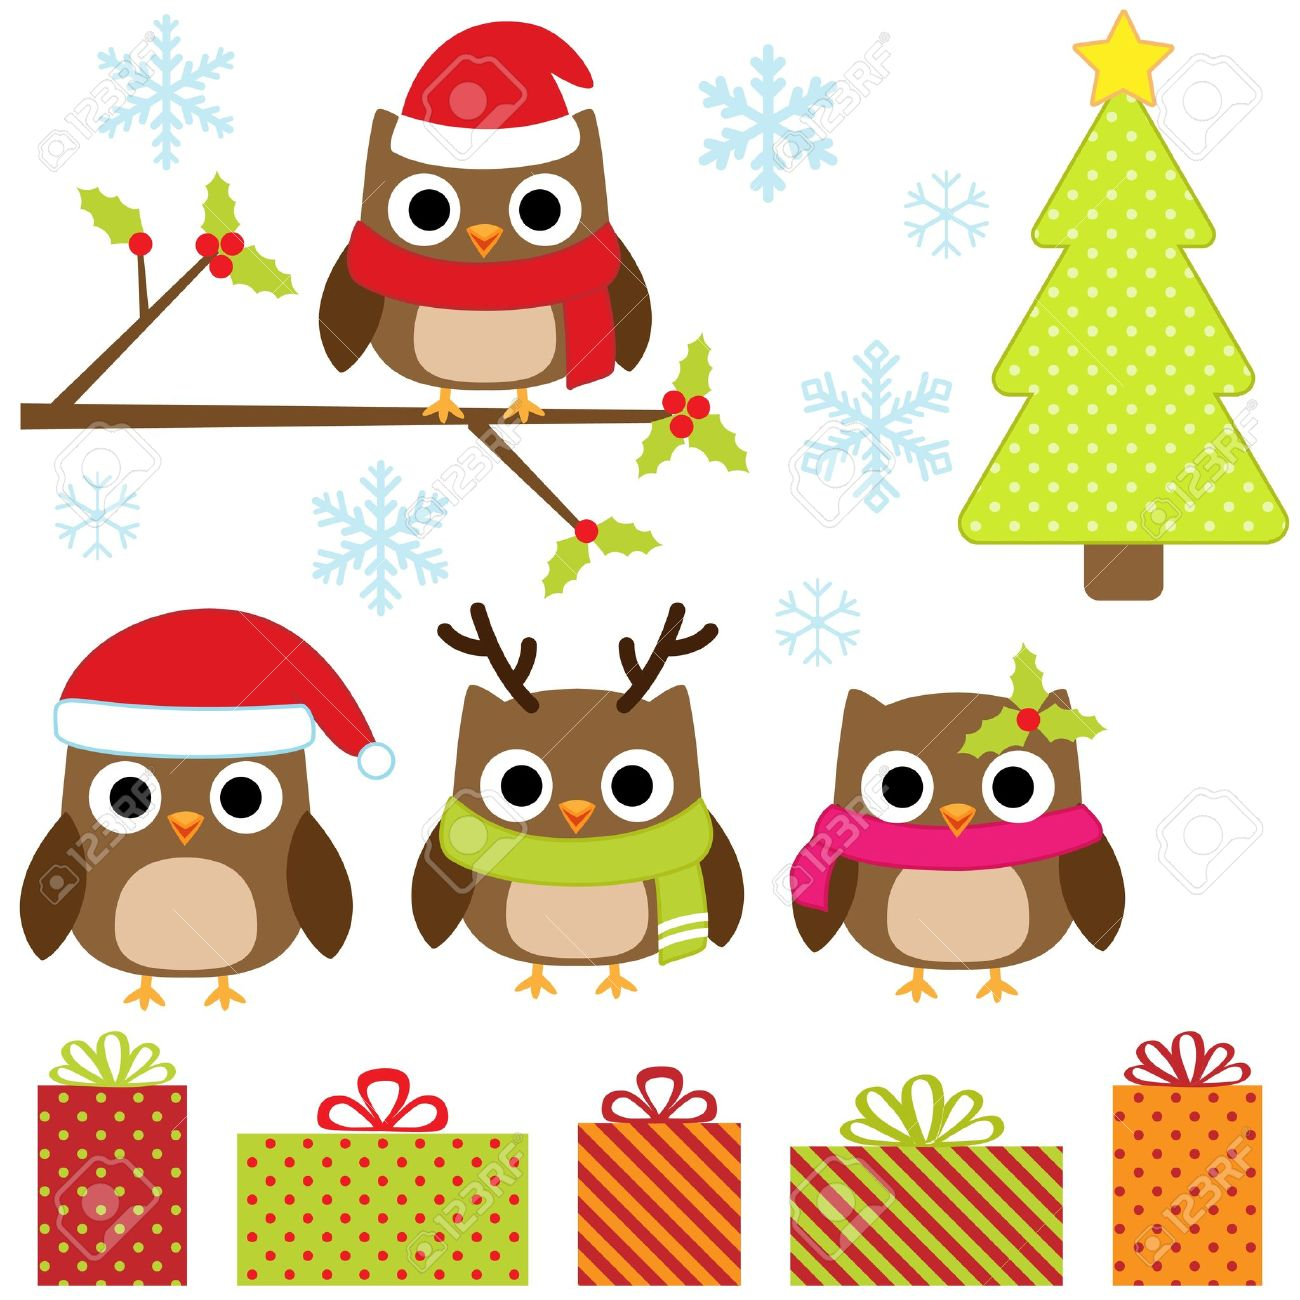 Cute Christmas Vector Set With Funny Owls Royalty Free Cliparts ...